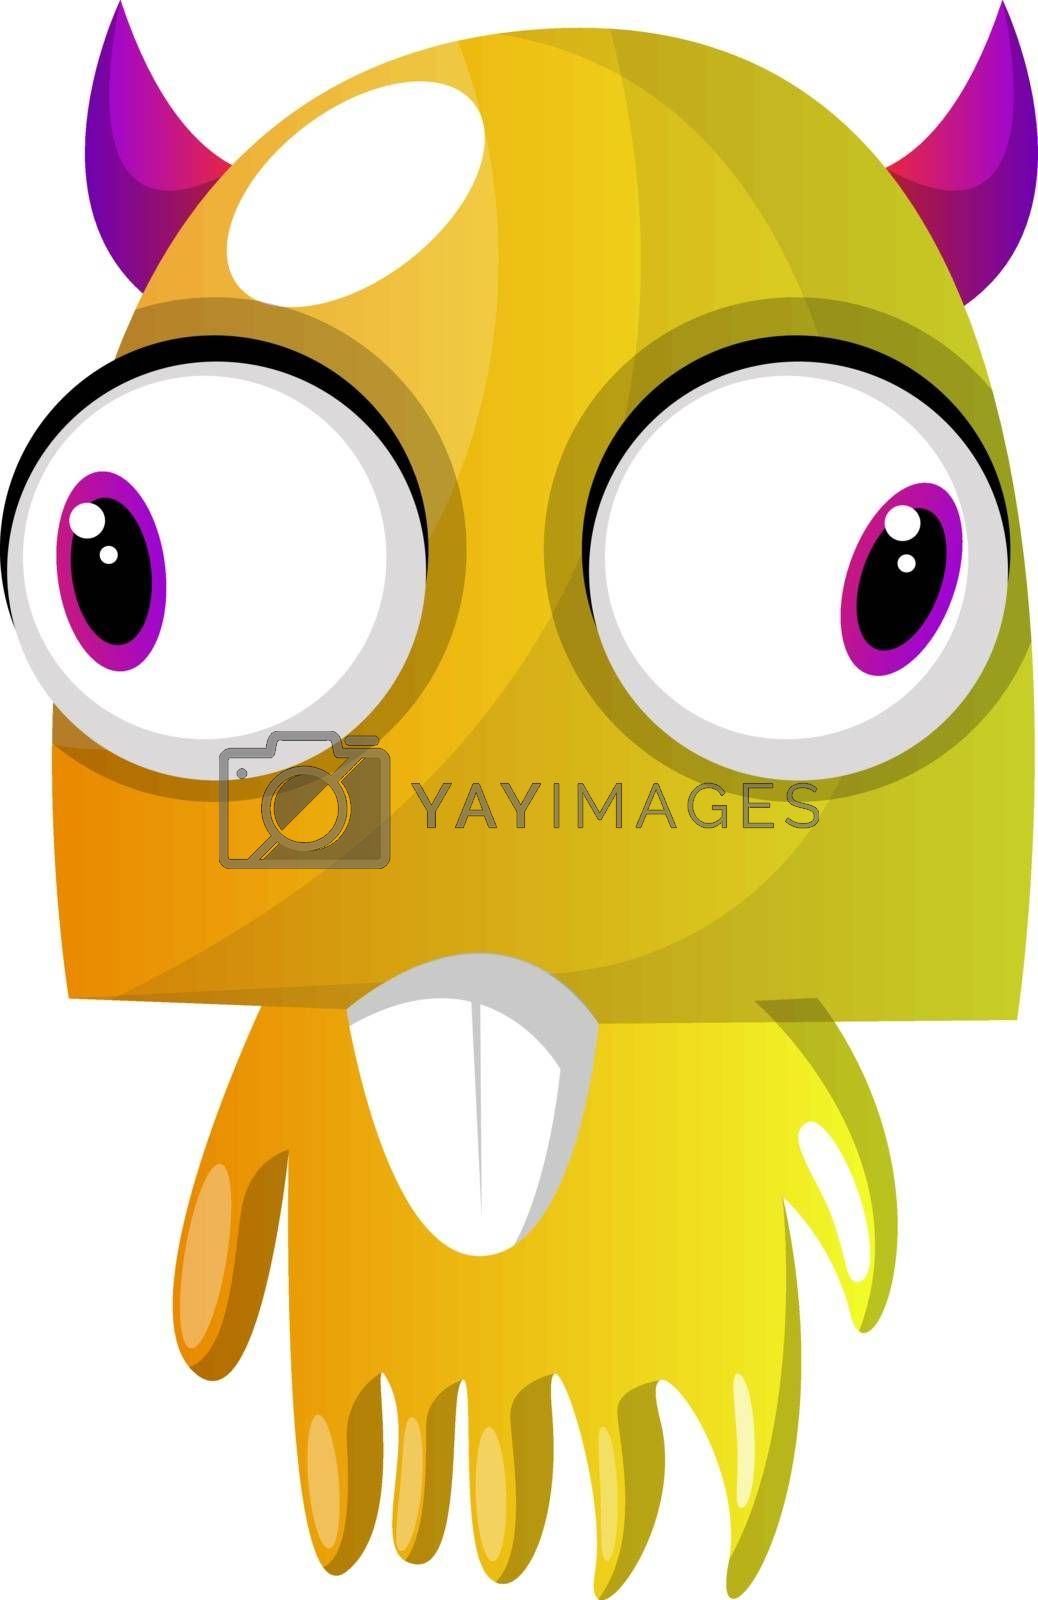 Royalty free image of Yellow monster with pink horns and big eyes illustration vector  by Morphart